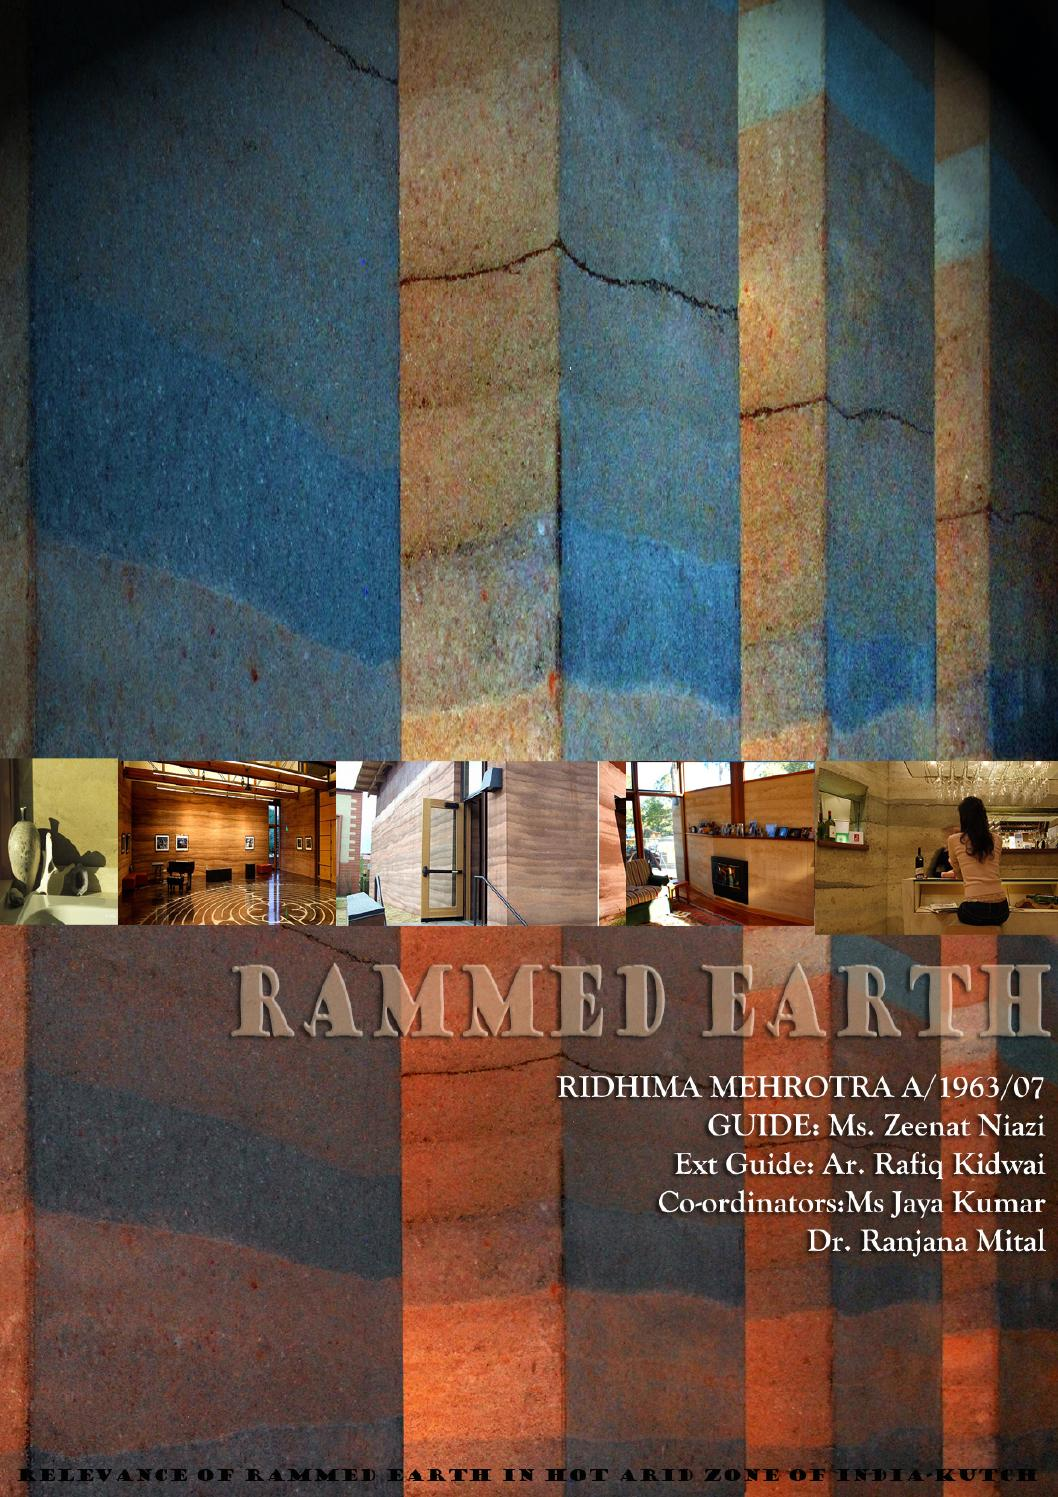 Rammed earth-The relevance of rammed earth in hot arid zone ... on earthships house plans, recycled materials house plans, passive solar house plans, sustainability house plans, sod house plans, faswall house plans, permaculture house plans, winery house plans, earthen homes plans, stick style house plans, earth block house plans, earth home plans, art house plans, clay house plans, earthbag house plans, 20' x 70' house plans, house house plans, straw bale house plans, structurally insulated panels house plans, rustic texas style house plans,